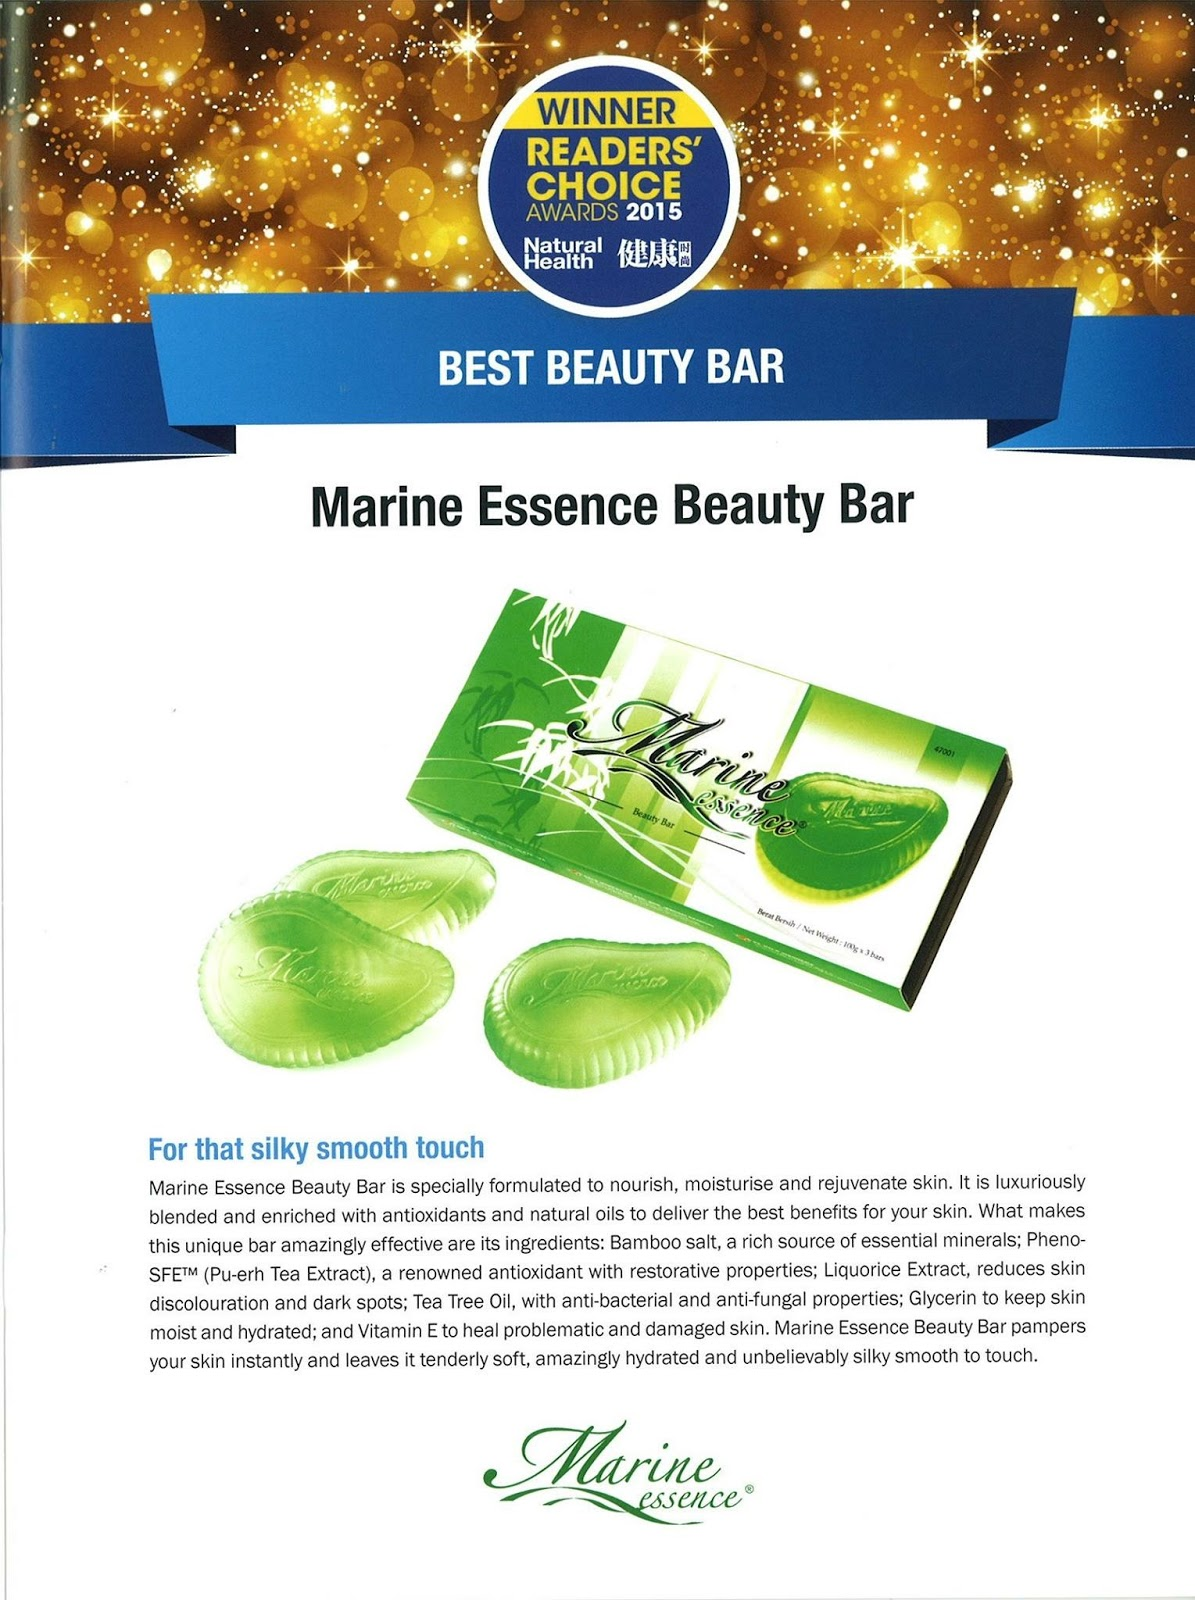 marine essence beauty bar sabun hijau